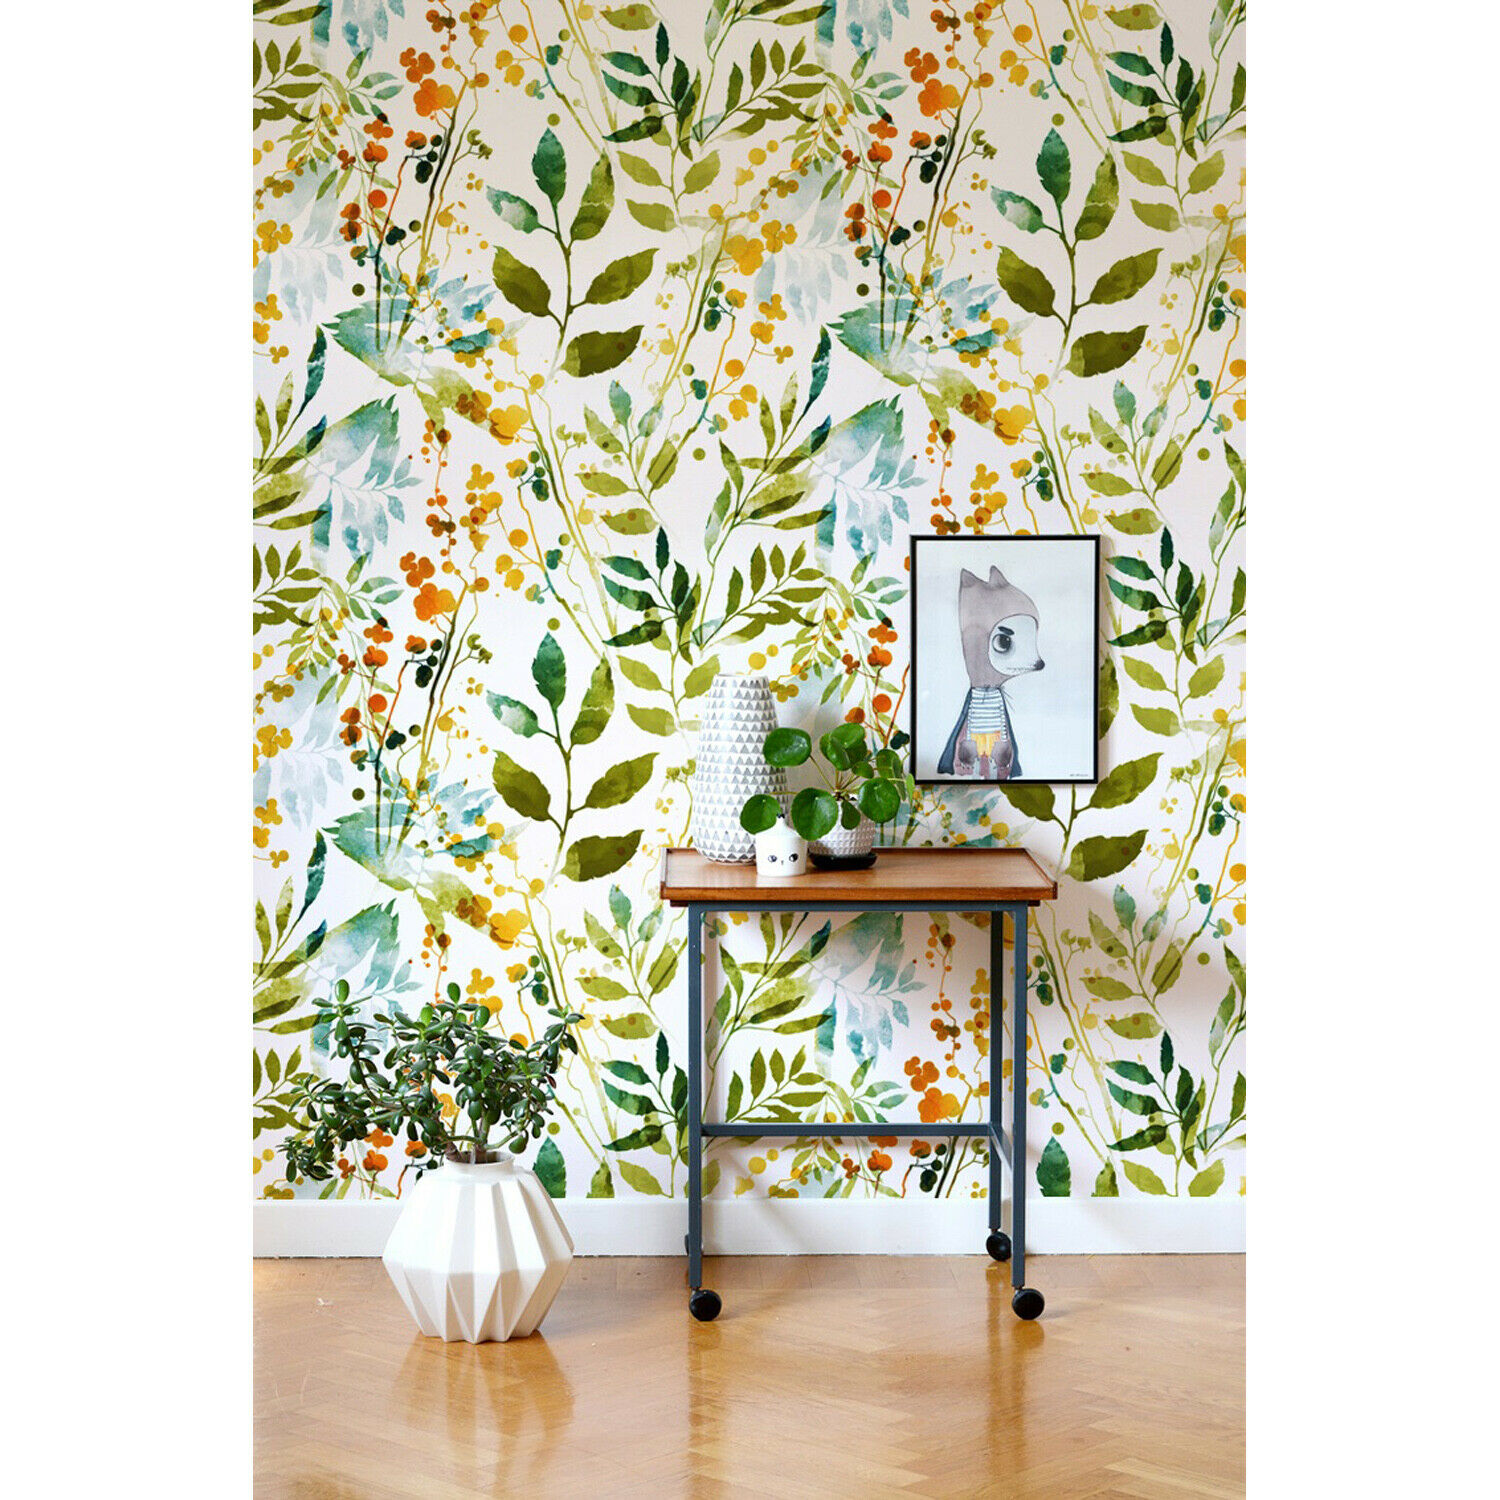 Boho Spring Removable Removable Removable Floral Painting